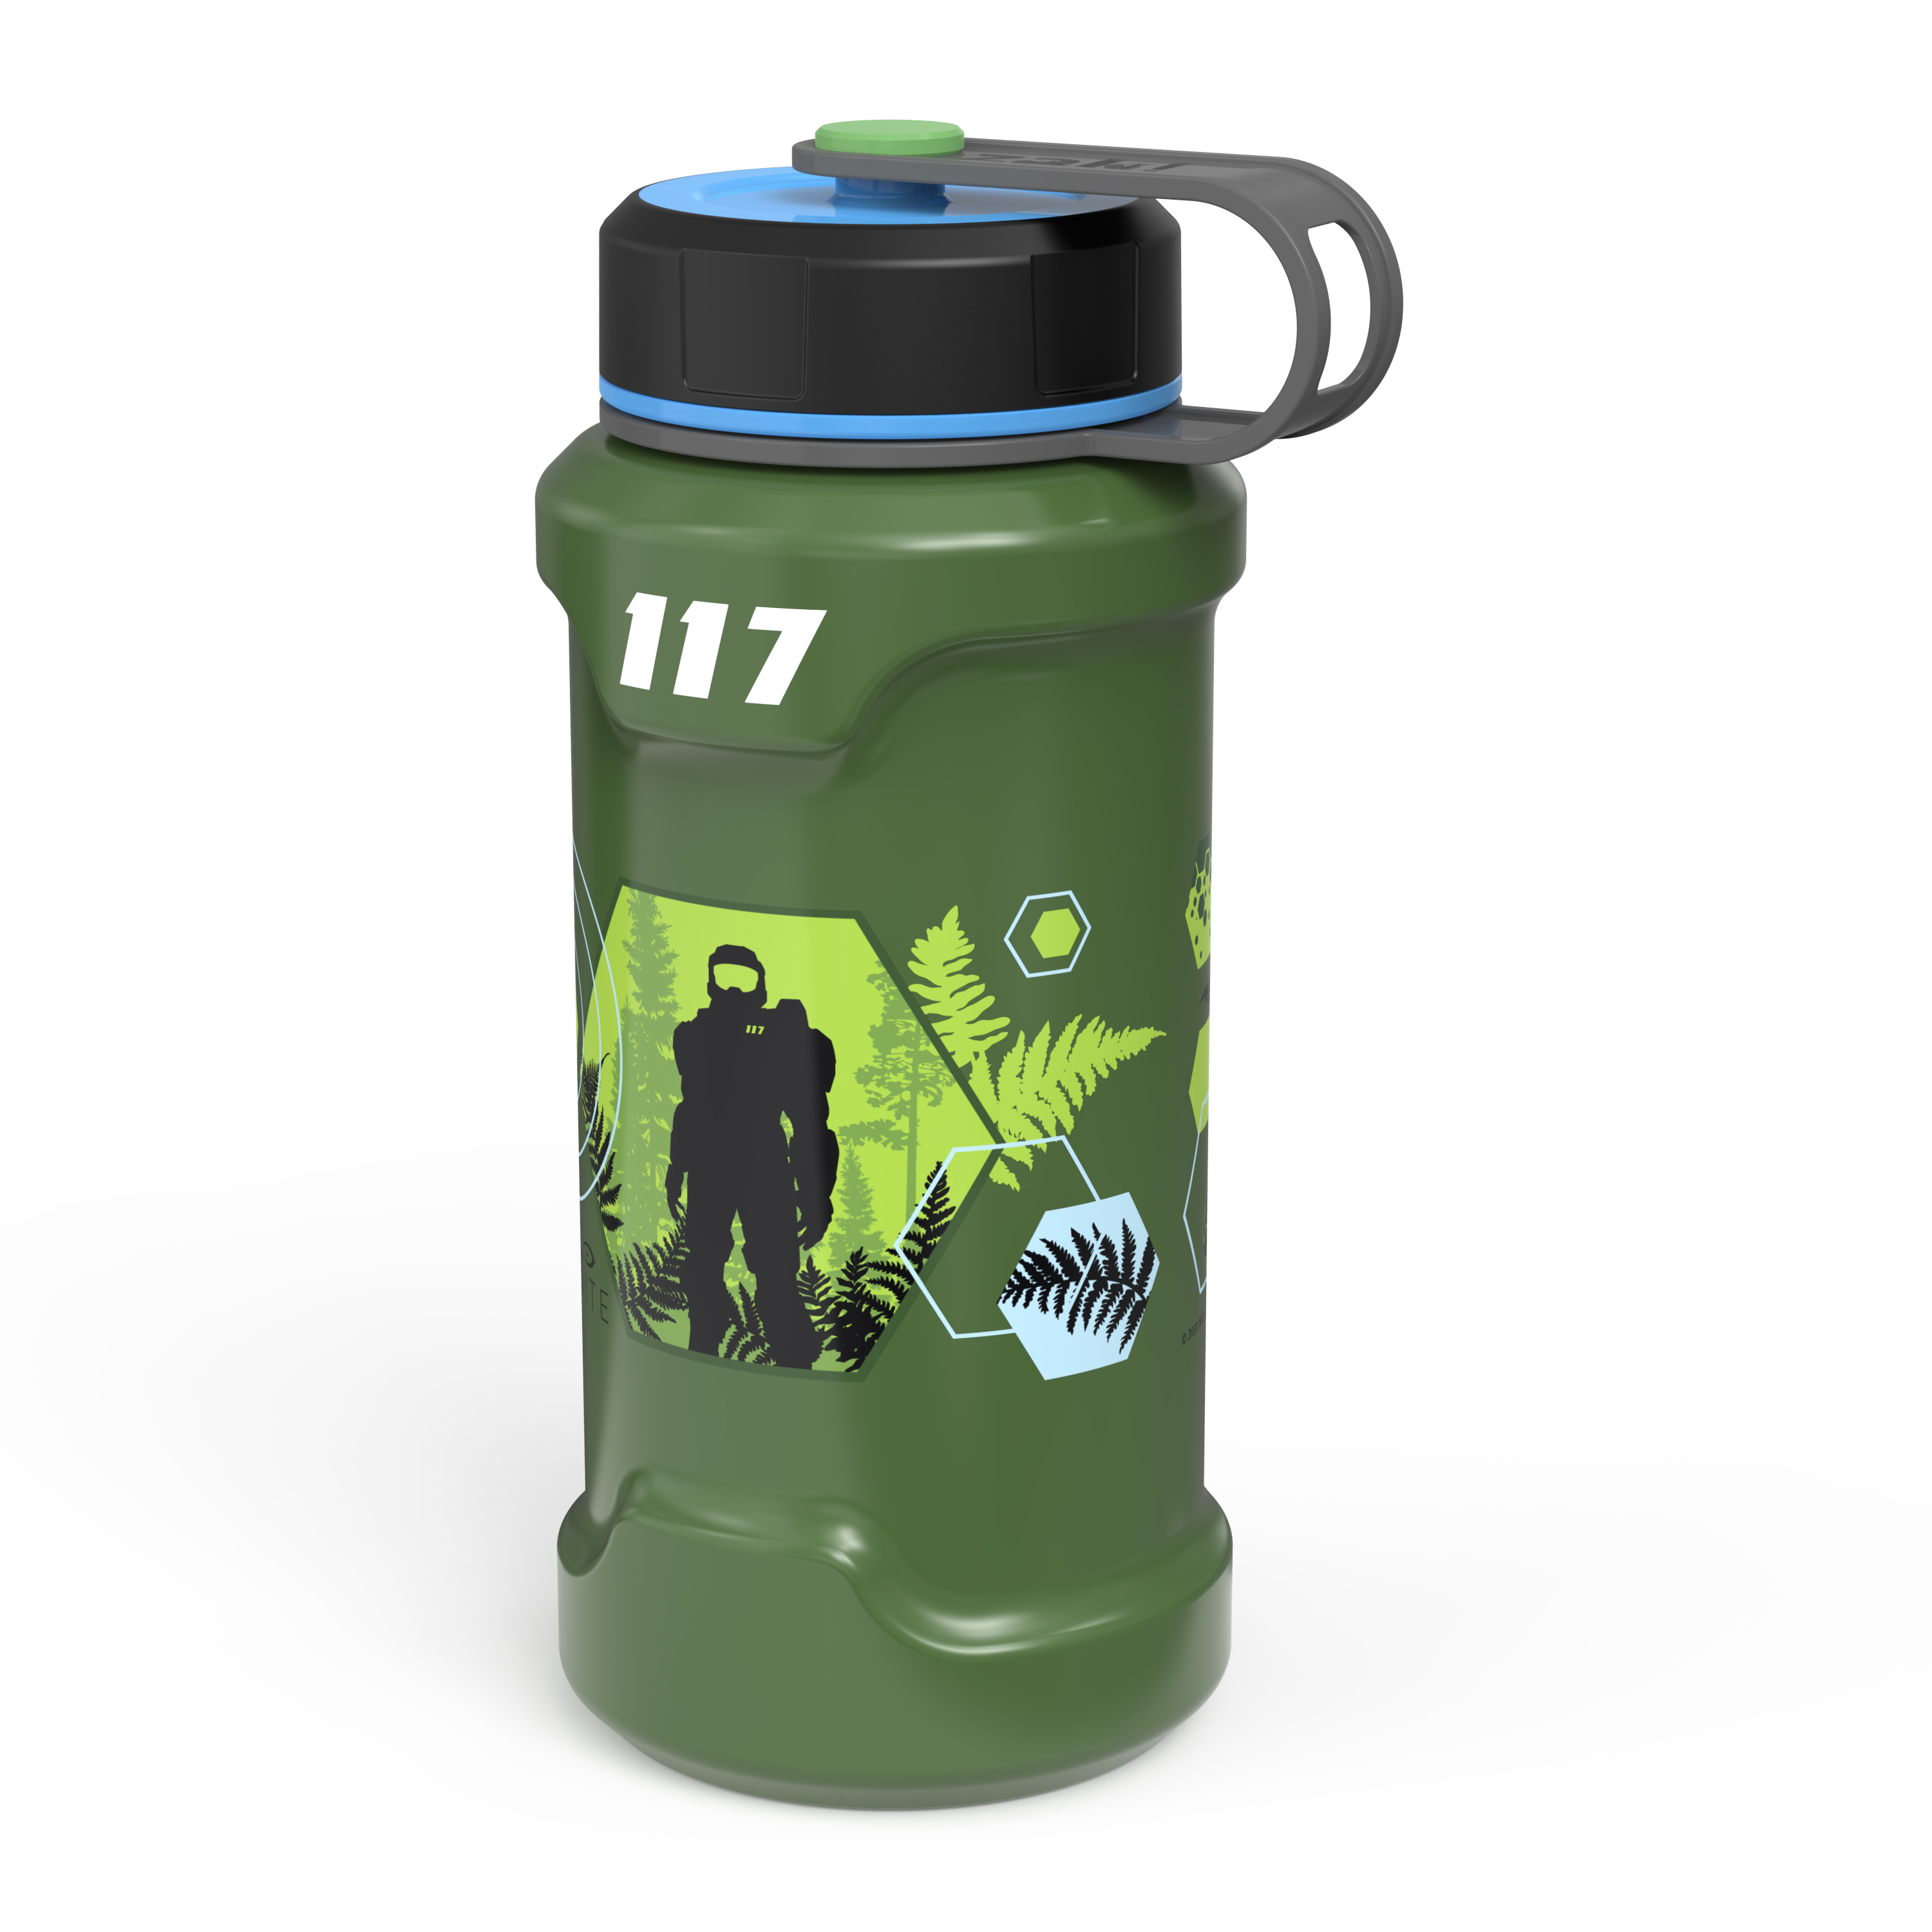 XBOX 24 ounce Stainless Steel Insulated Water Bottle, Halo slideshow image 2